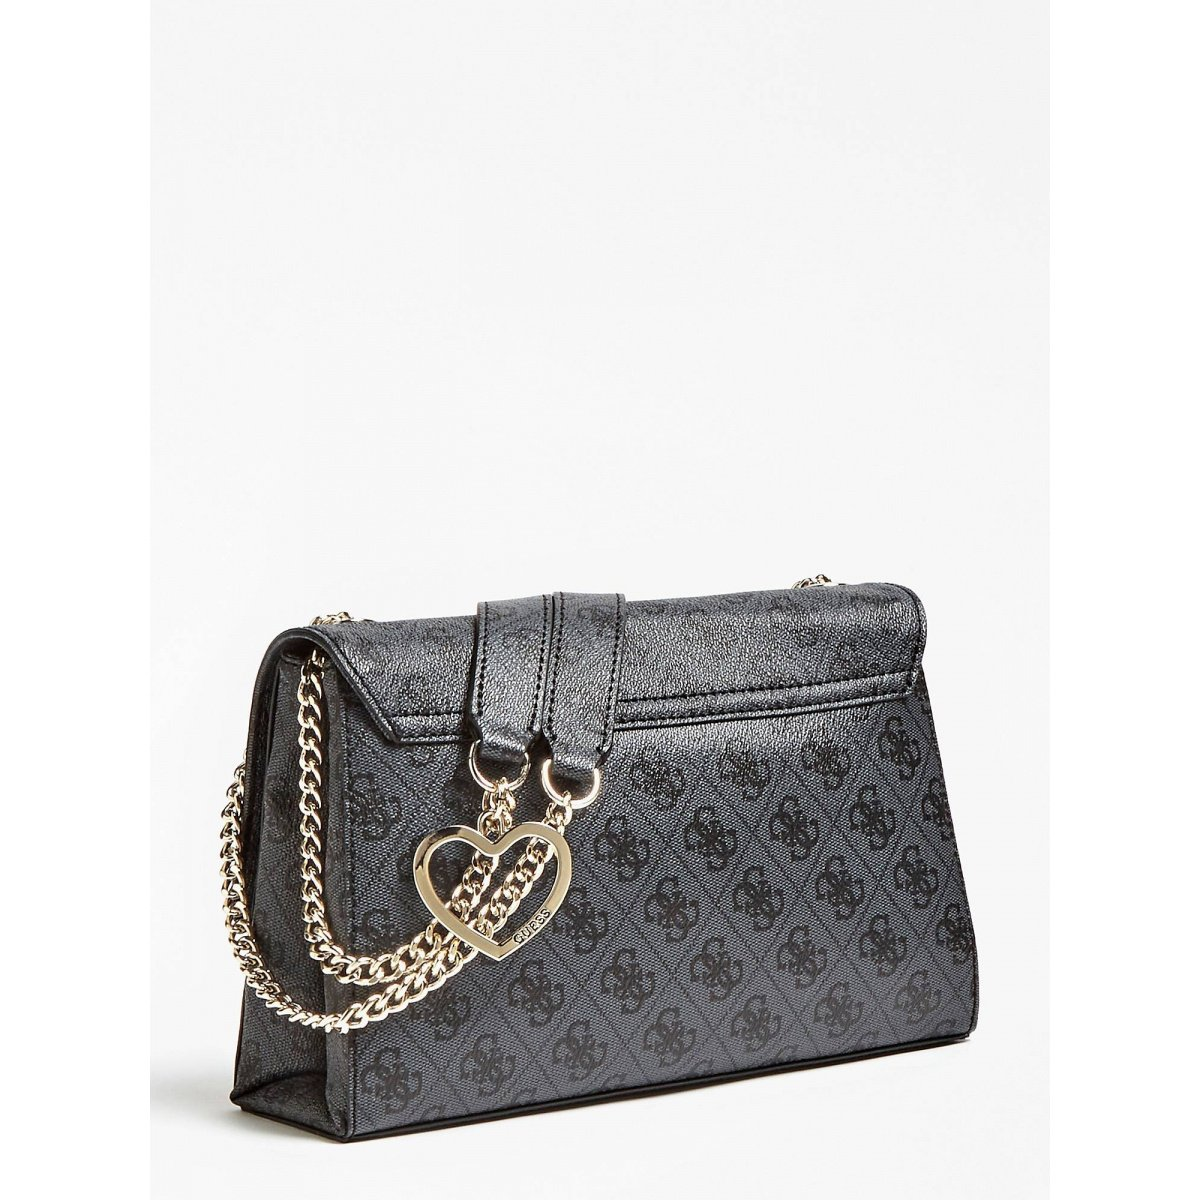 Sac bandouliere femme Guess